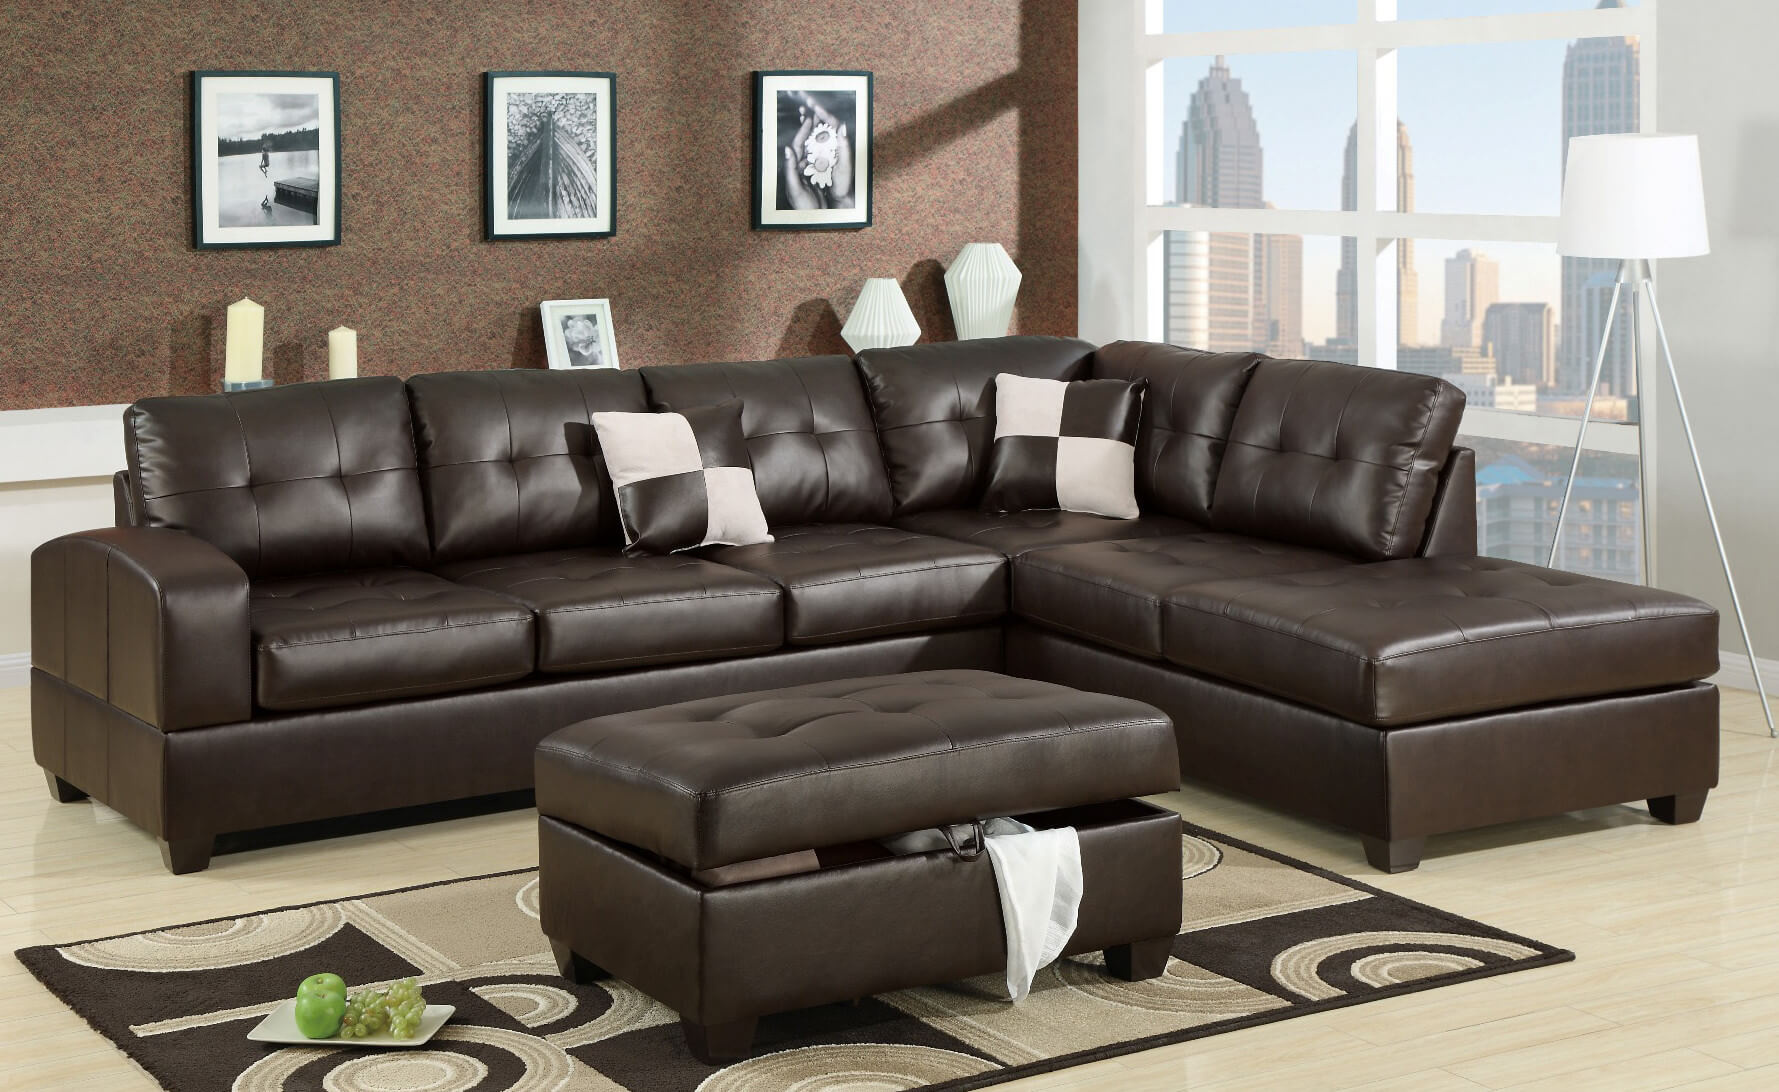 loveseat genuine bed camel small size couch modular full chaise sectional of sofas corner l leather with sofa couches shaped tan